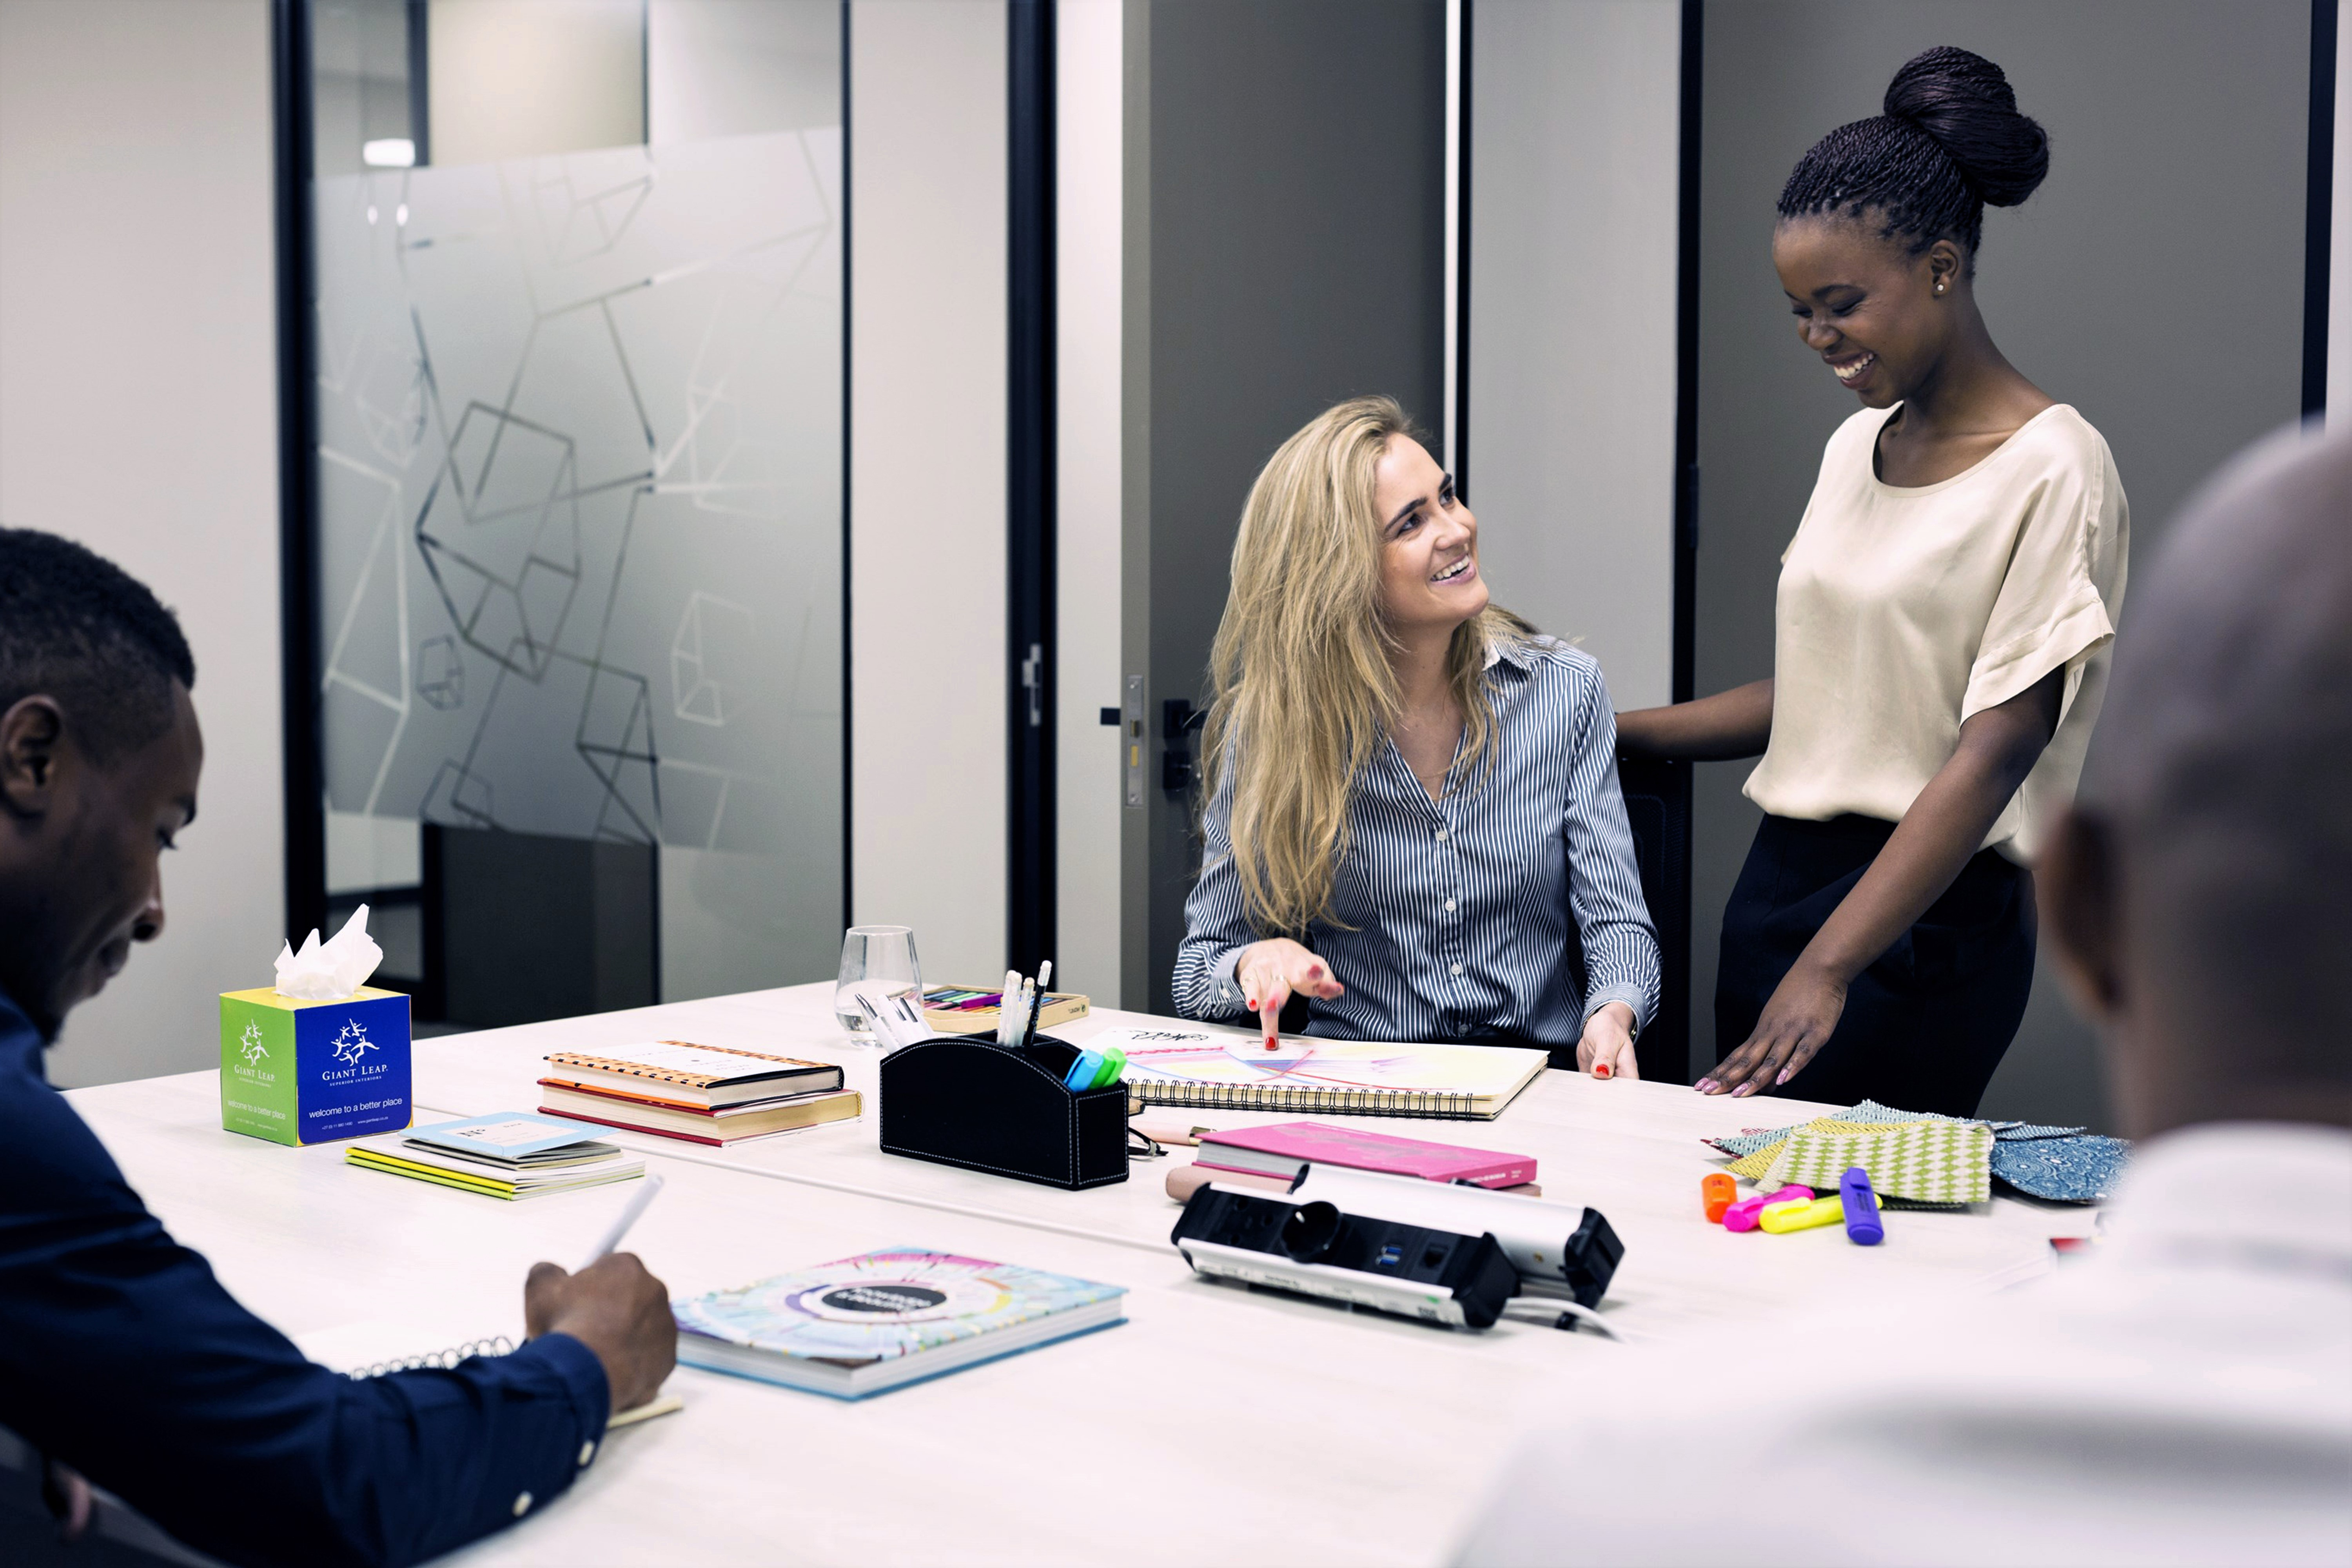 Co-working impacts innovation: small businesses